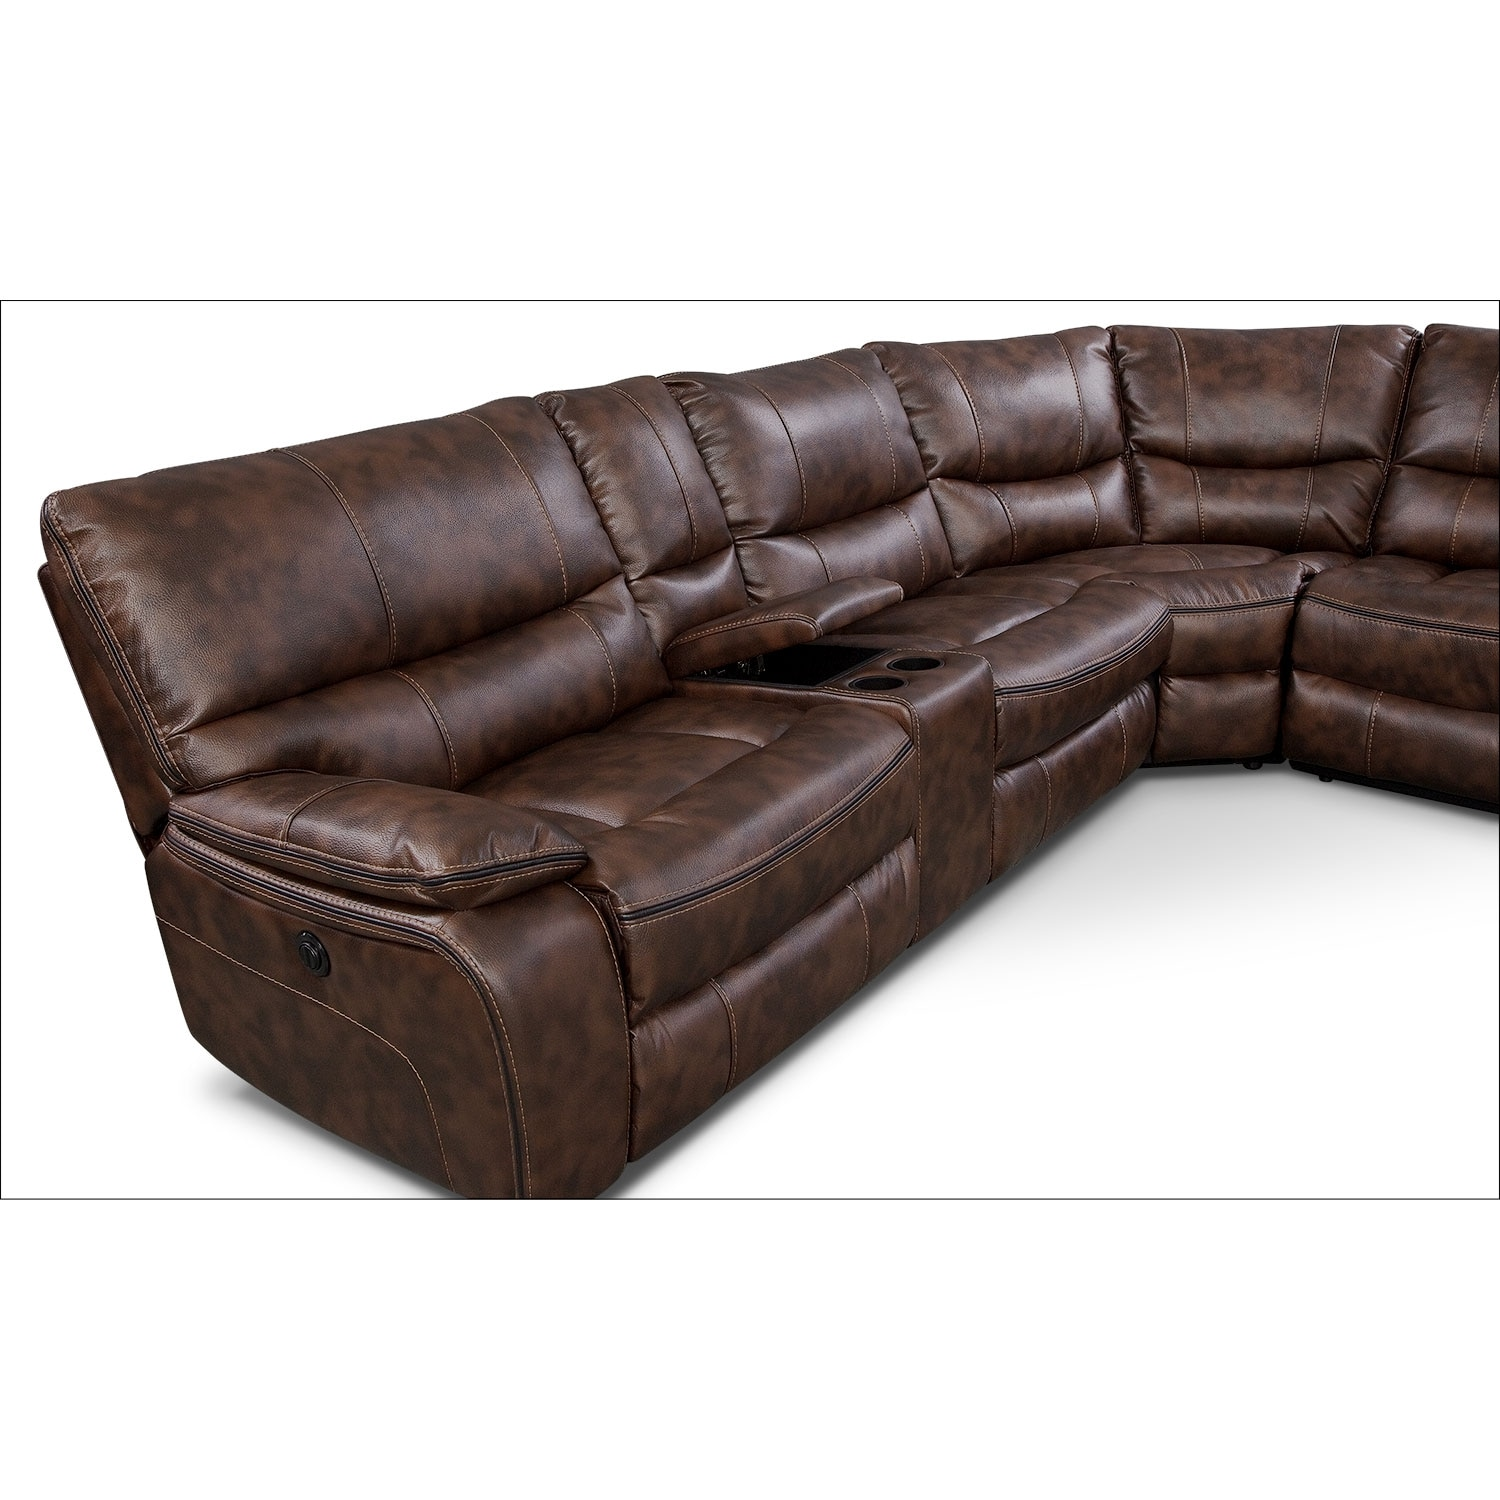 Leather Sectional Sofa With Power Recliner hmmi